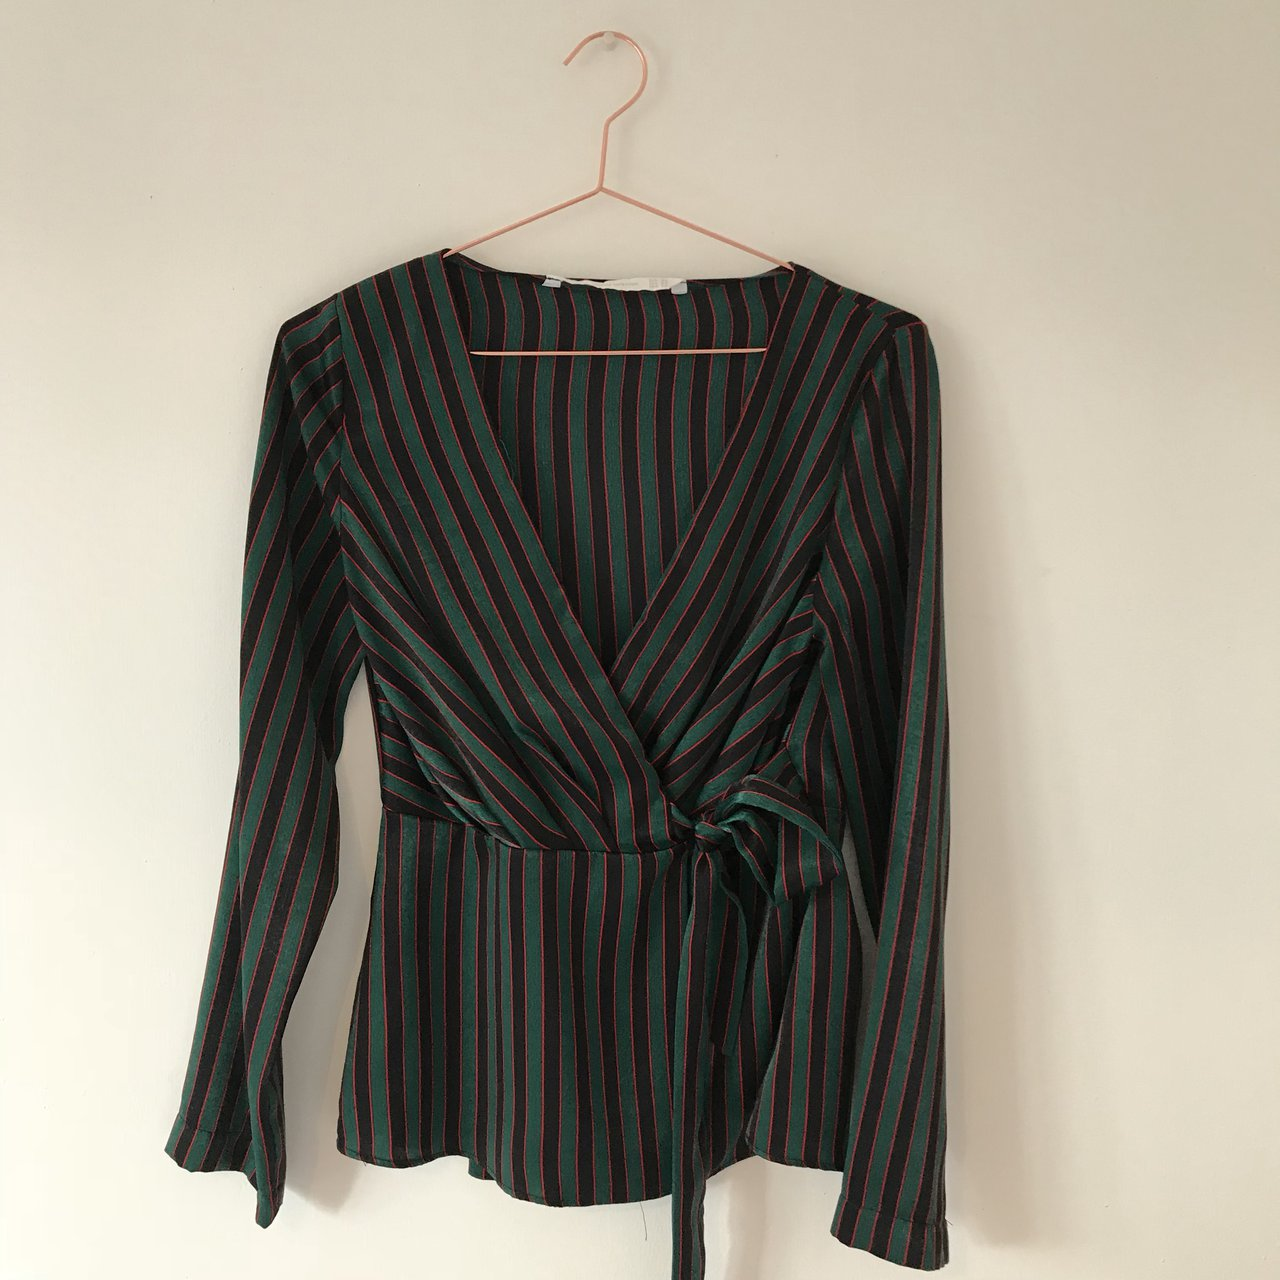 7828856e595bdc Green black red stripe silk wrap over shirt. Worn once